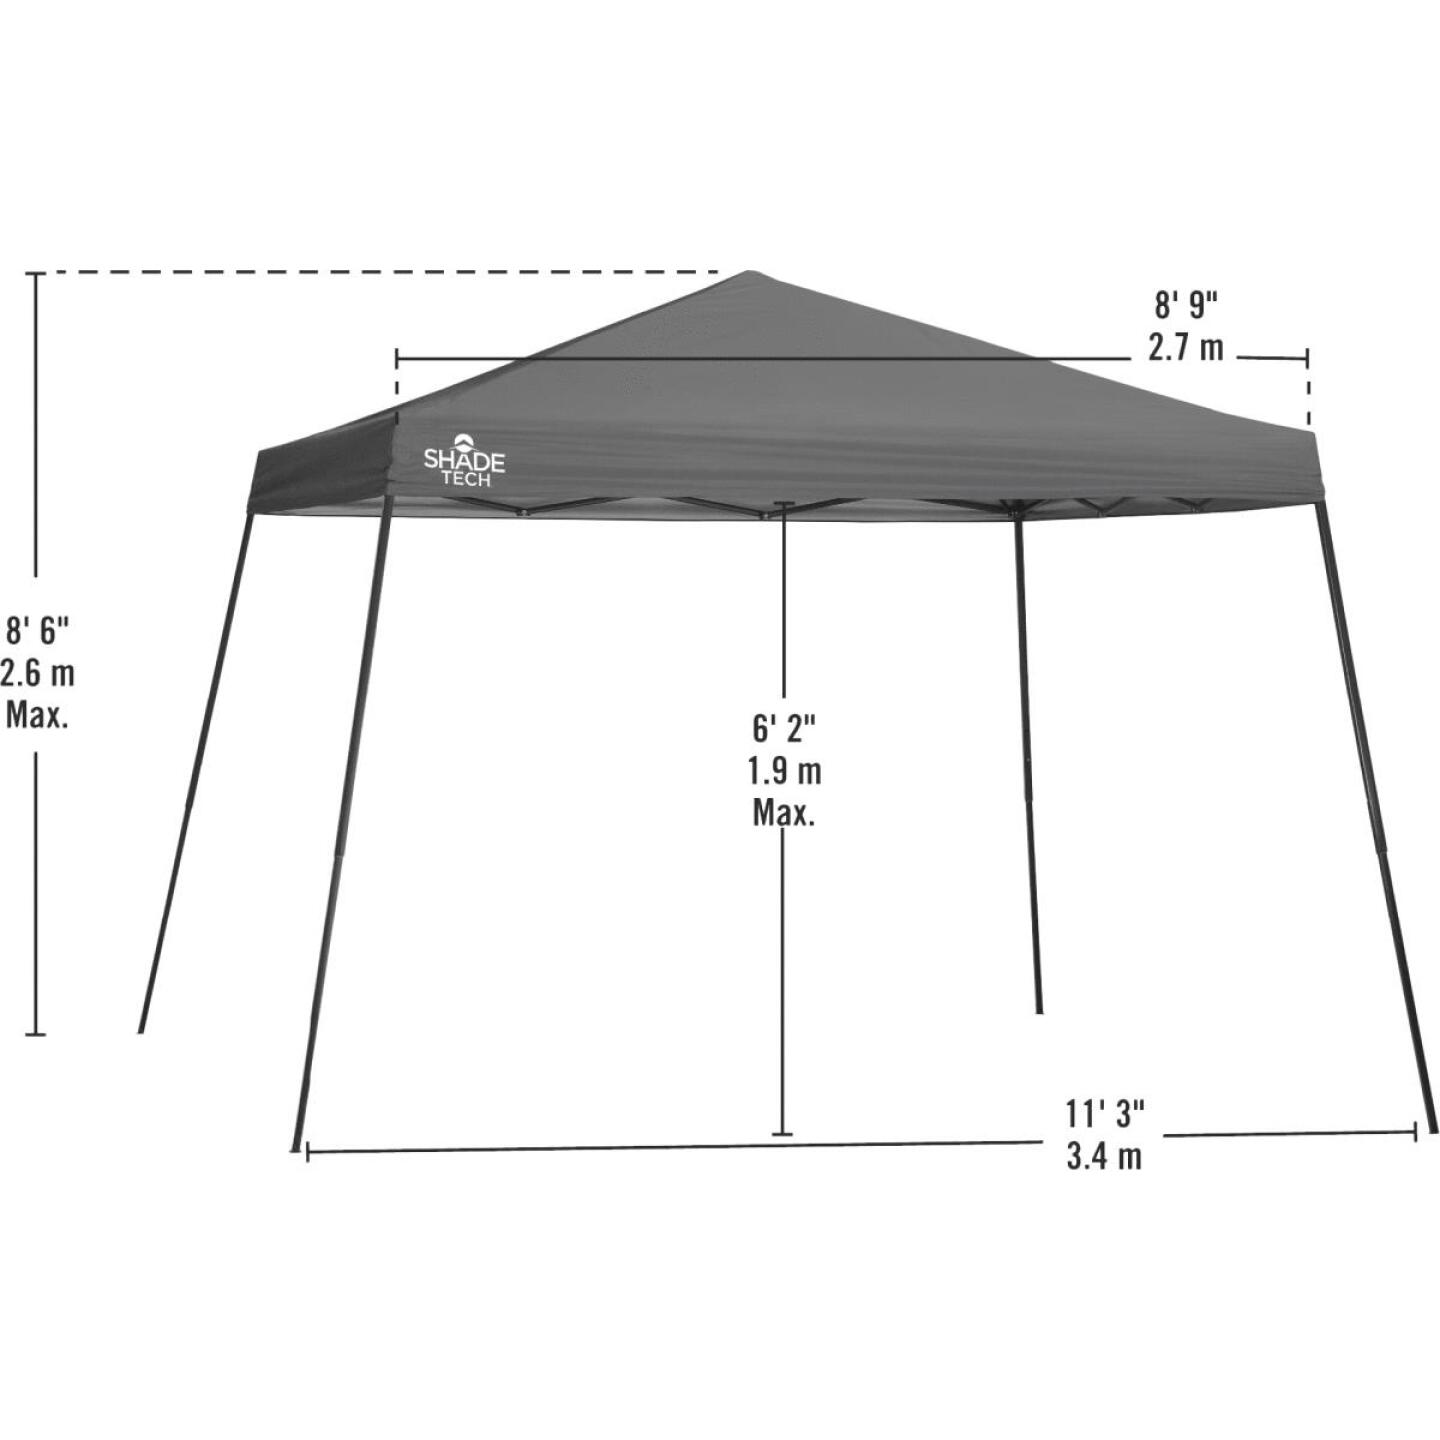 Quik Shade Shade Tech 12 Ft. x 12 Ft. Red Aluminex Fabric Canopy Image 3